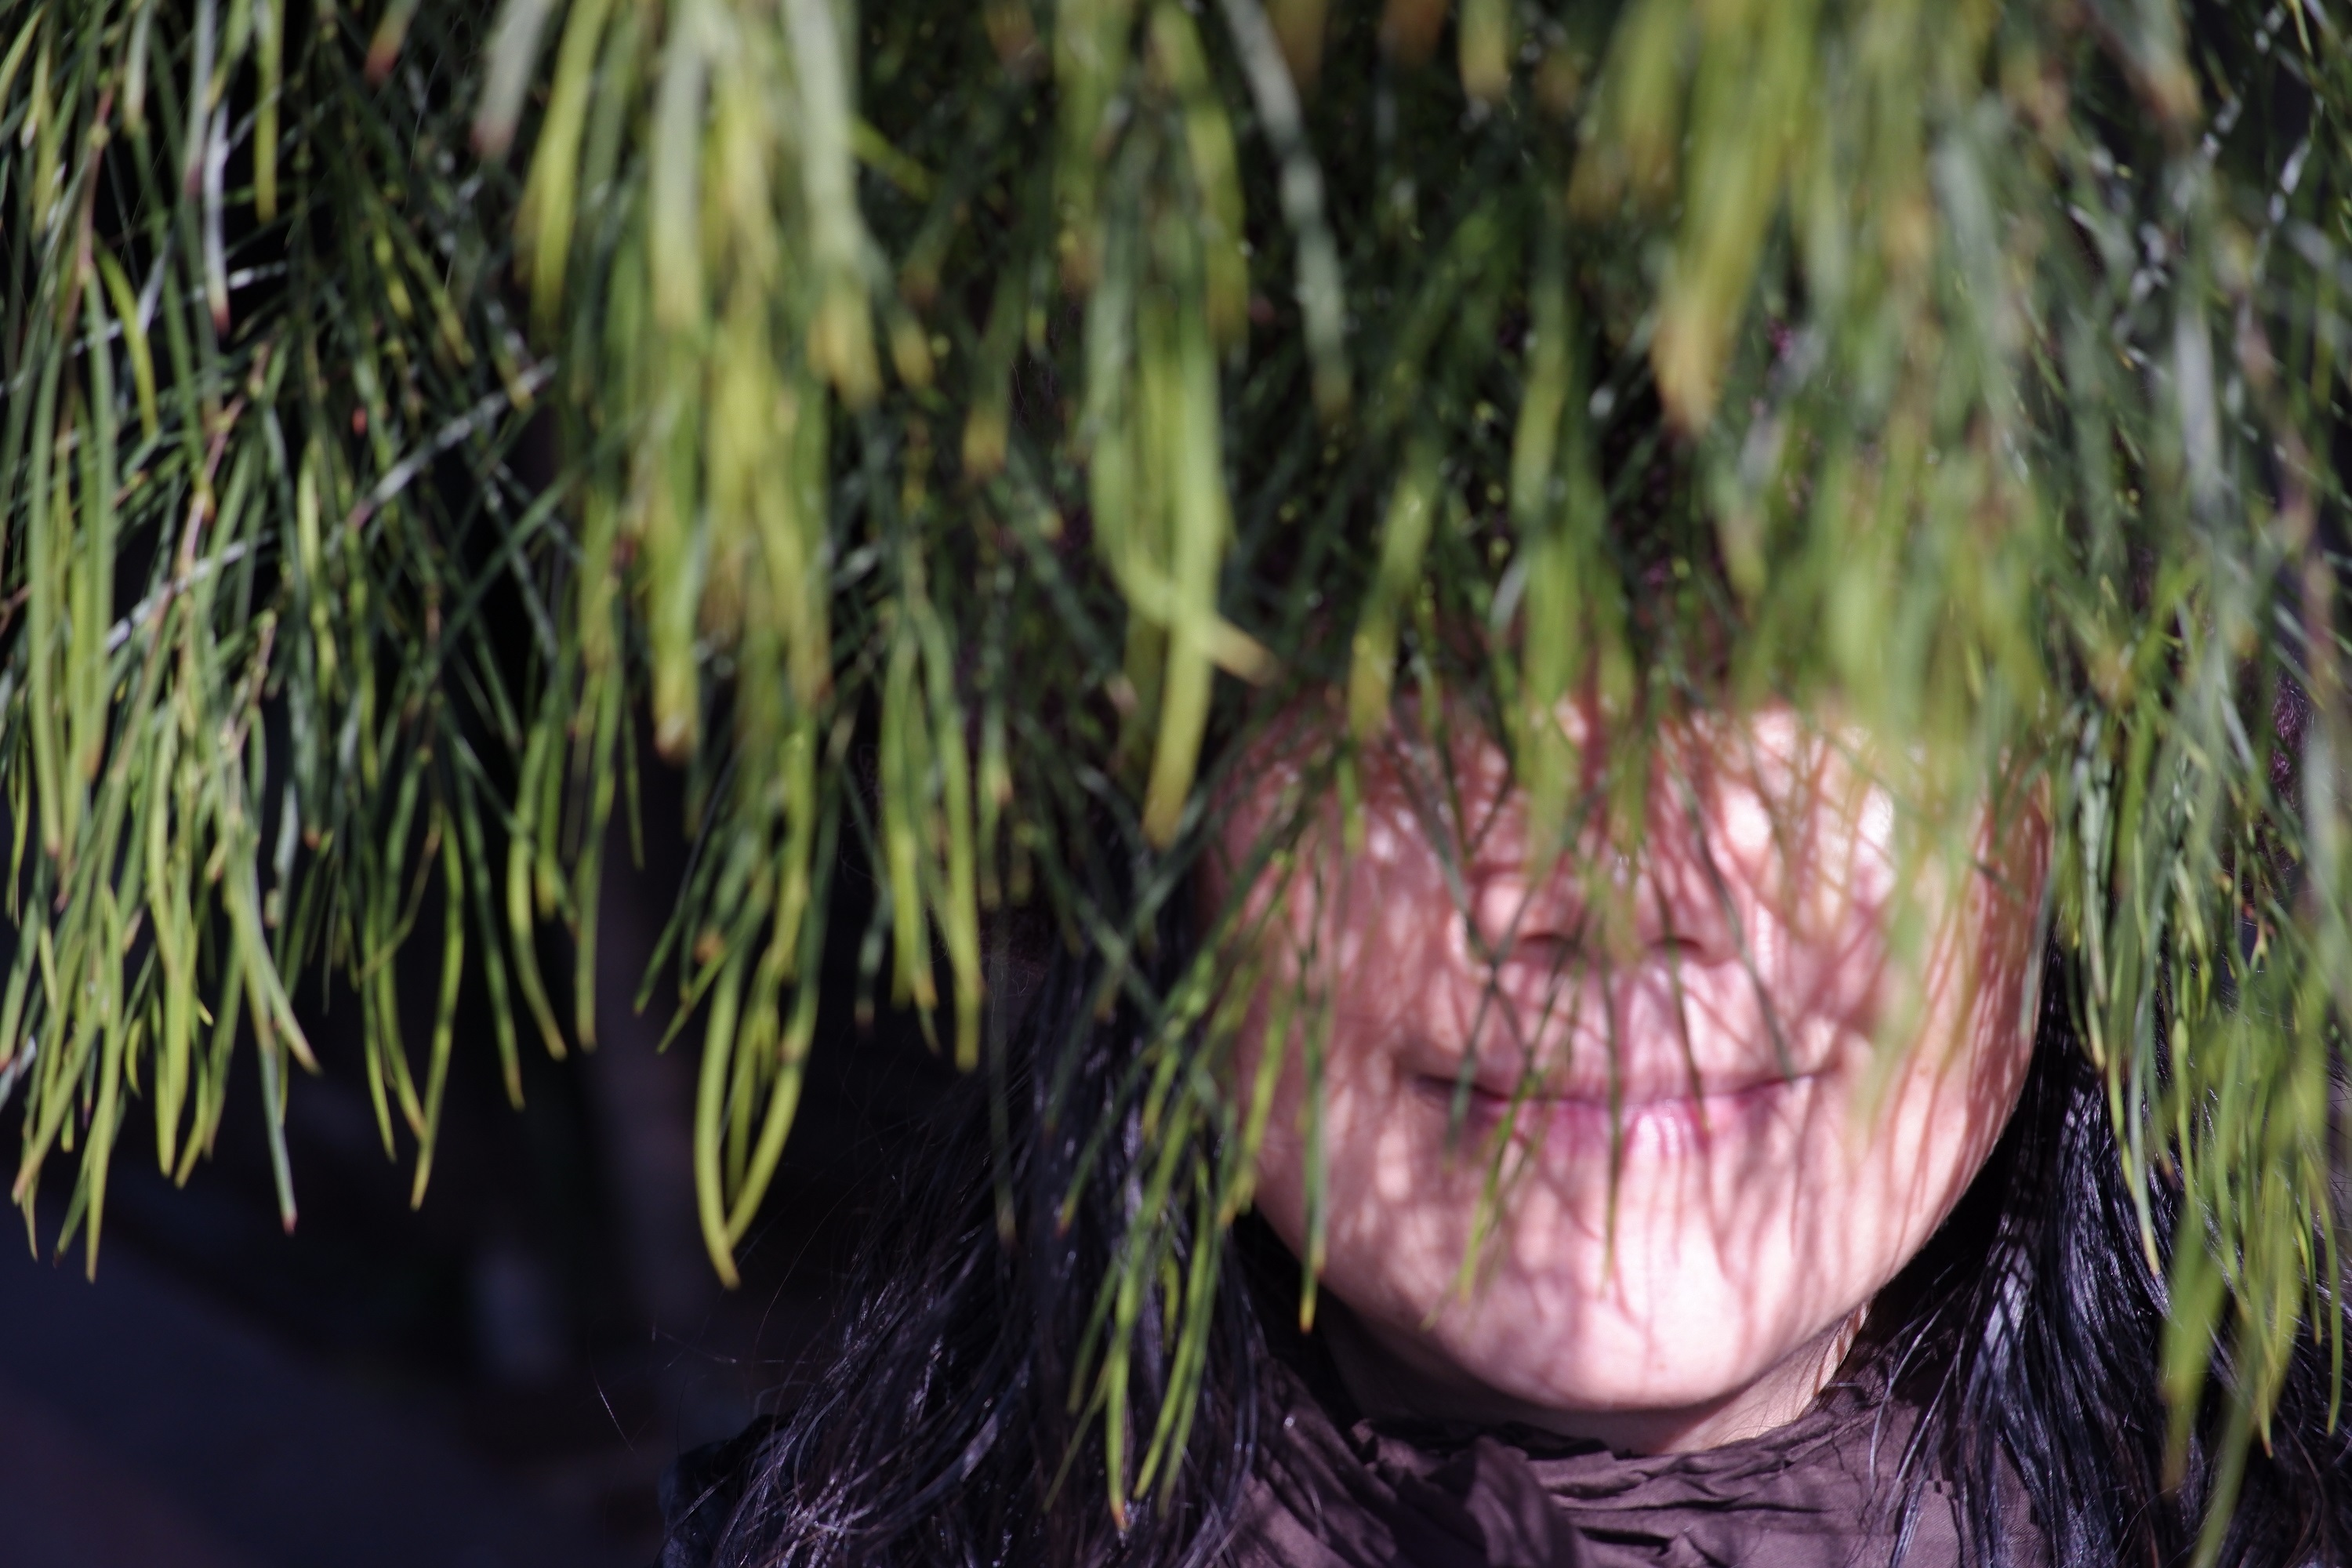 A smiling person's face, obscured by pine needles drooping over them